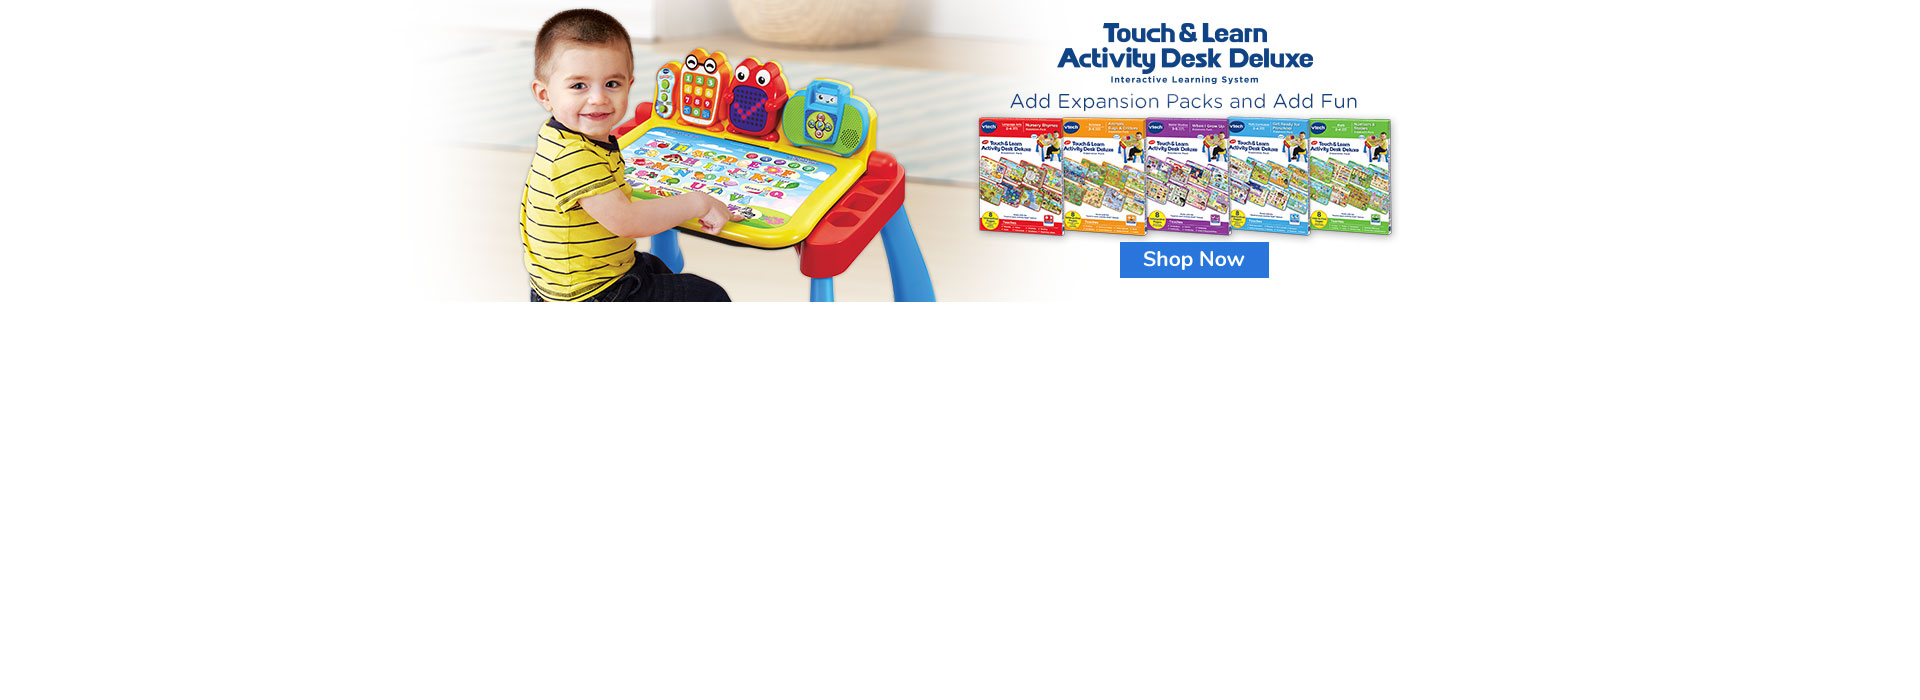 Touch & Learn Activity Desk Deluxe & Books